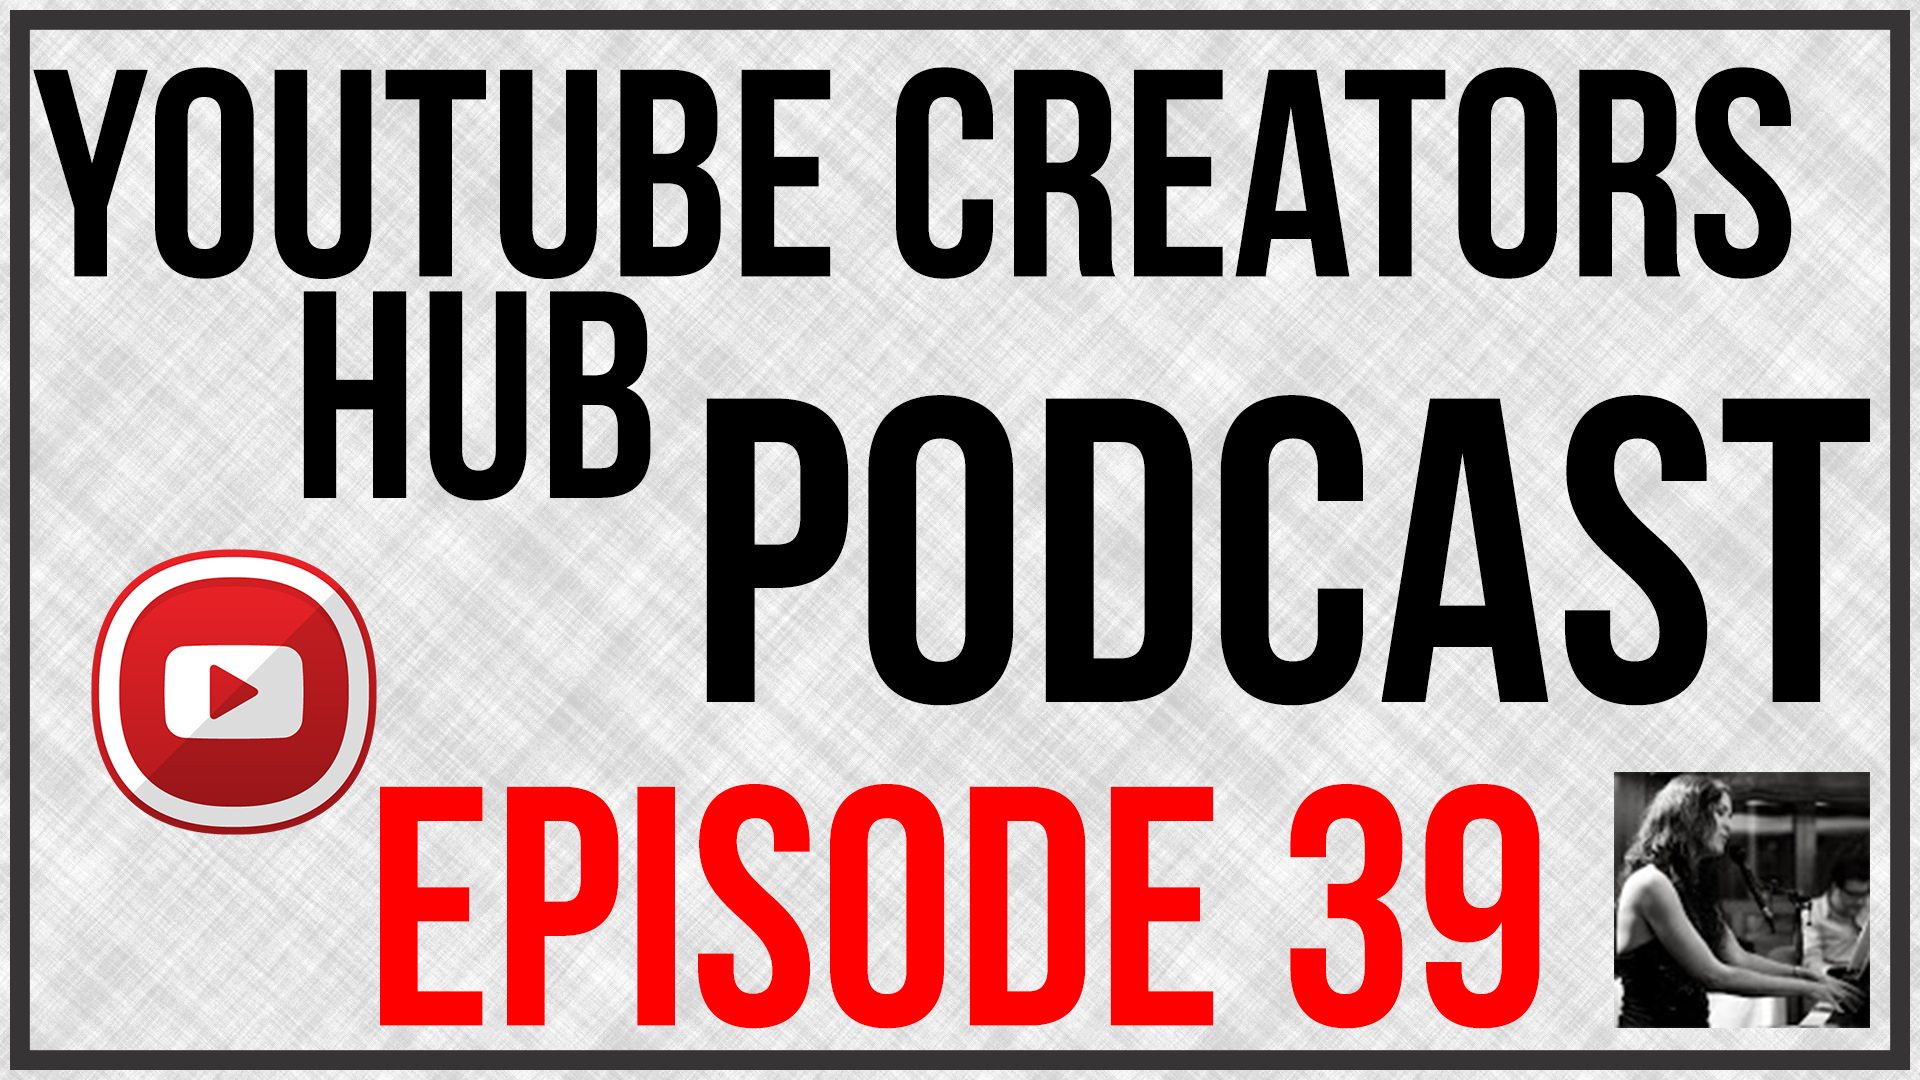 youtube creators hub podcast episode 39